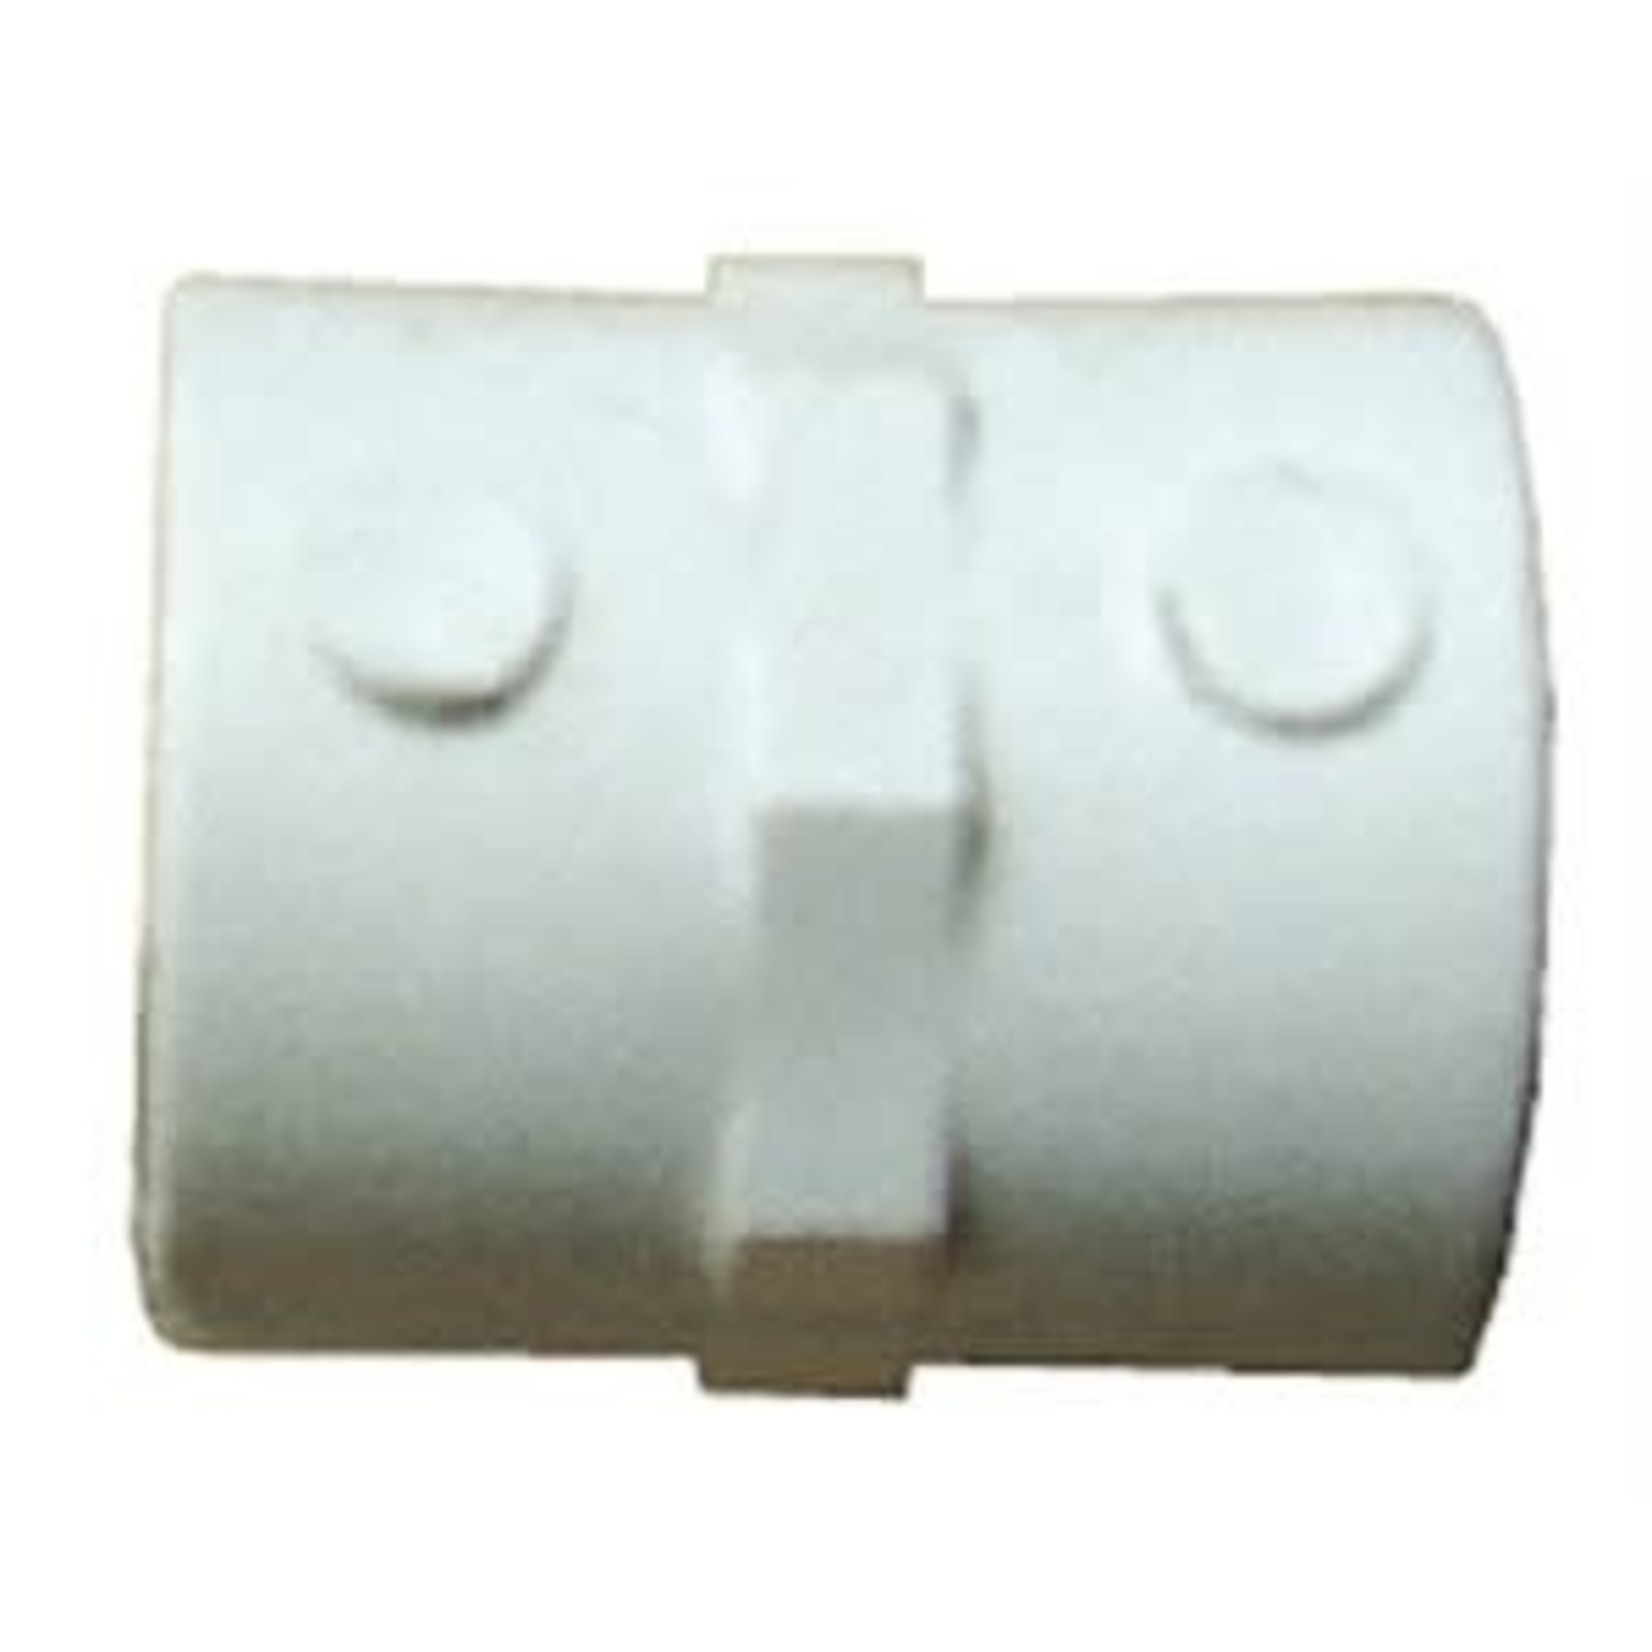 MAG DRIVE HOSE INSERT ADAPTER 1 / 2''